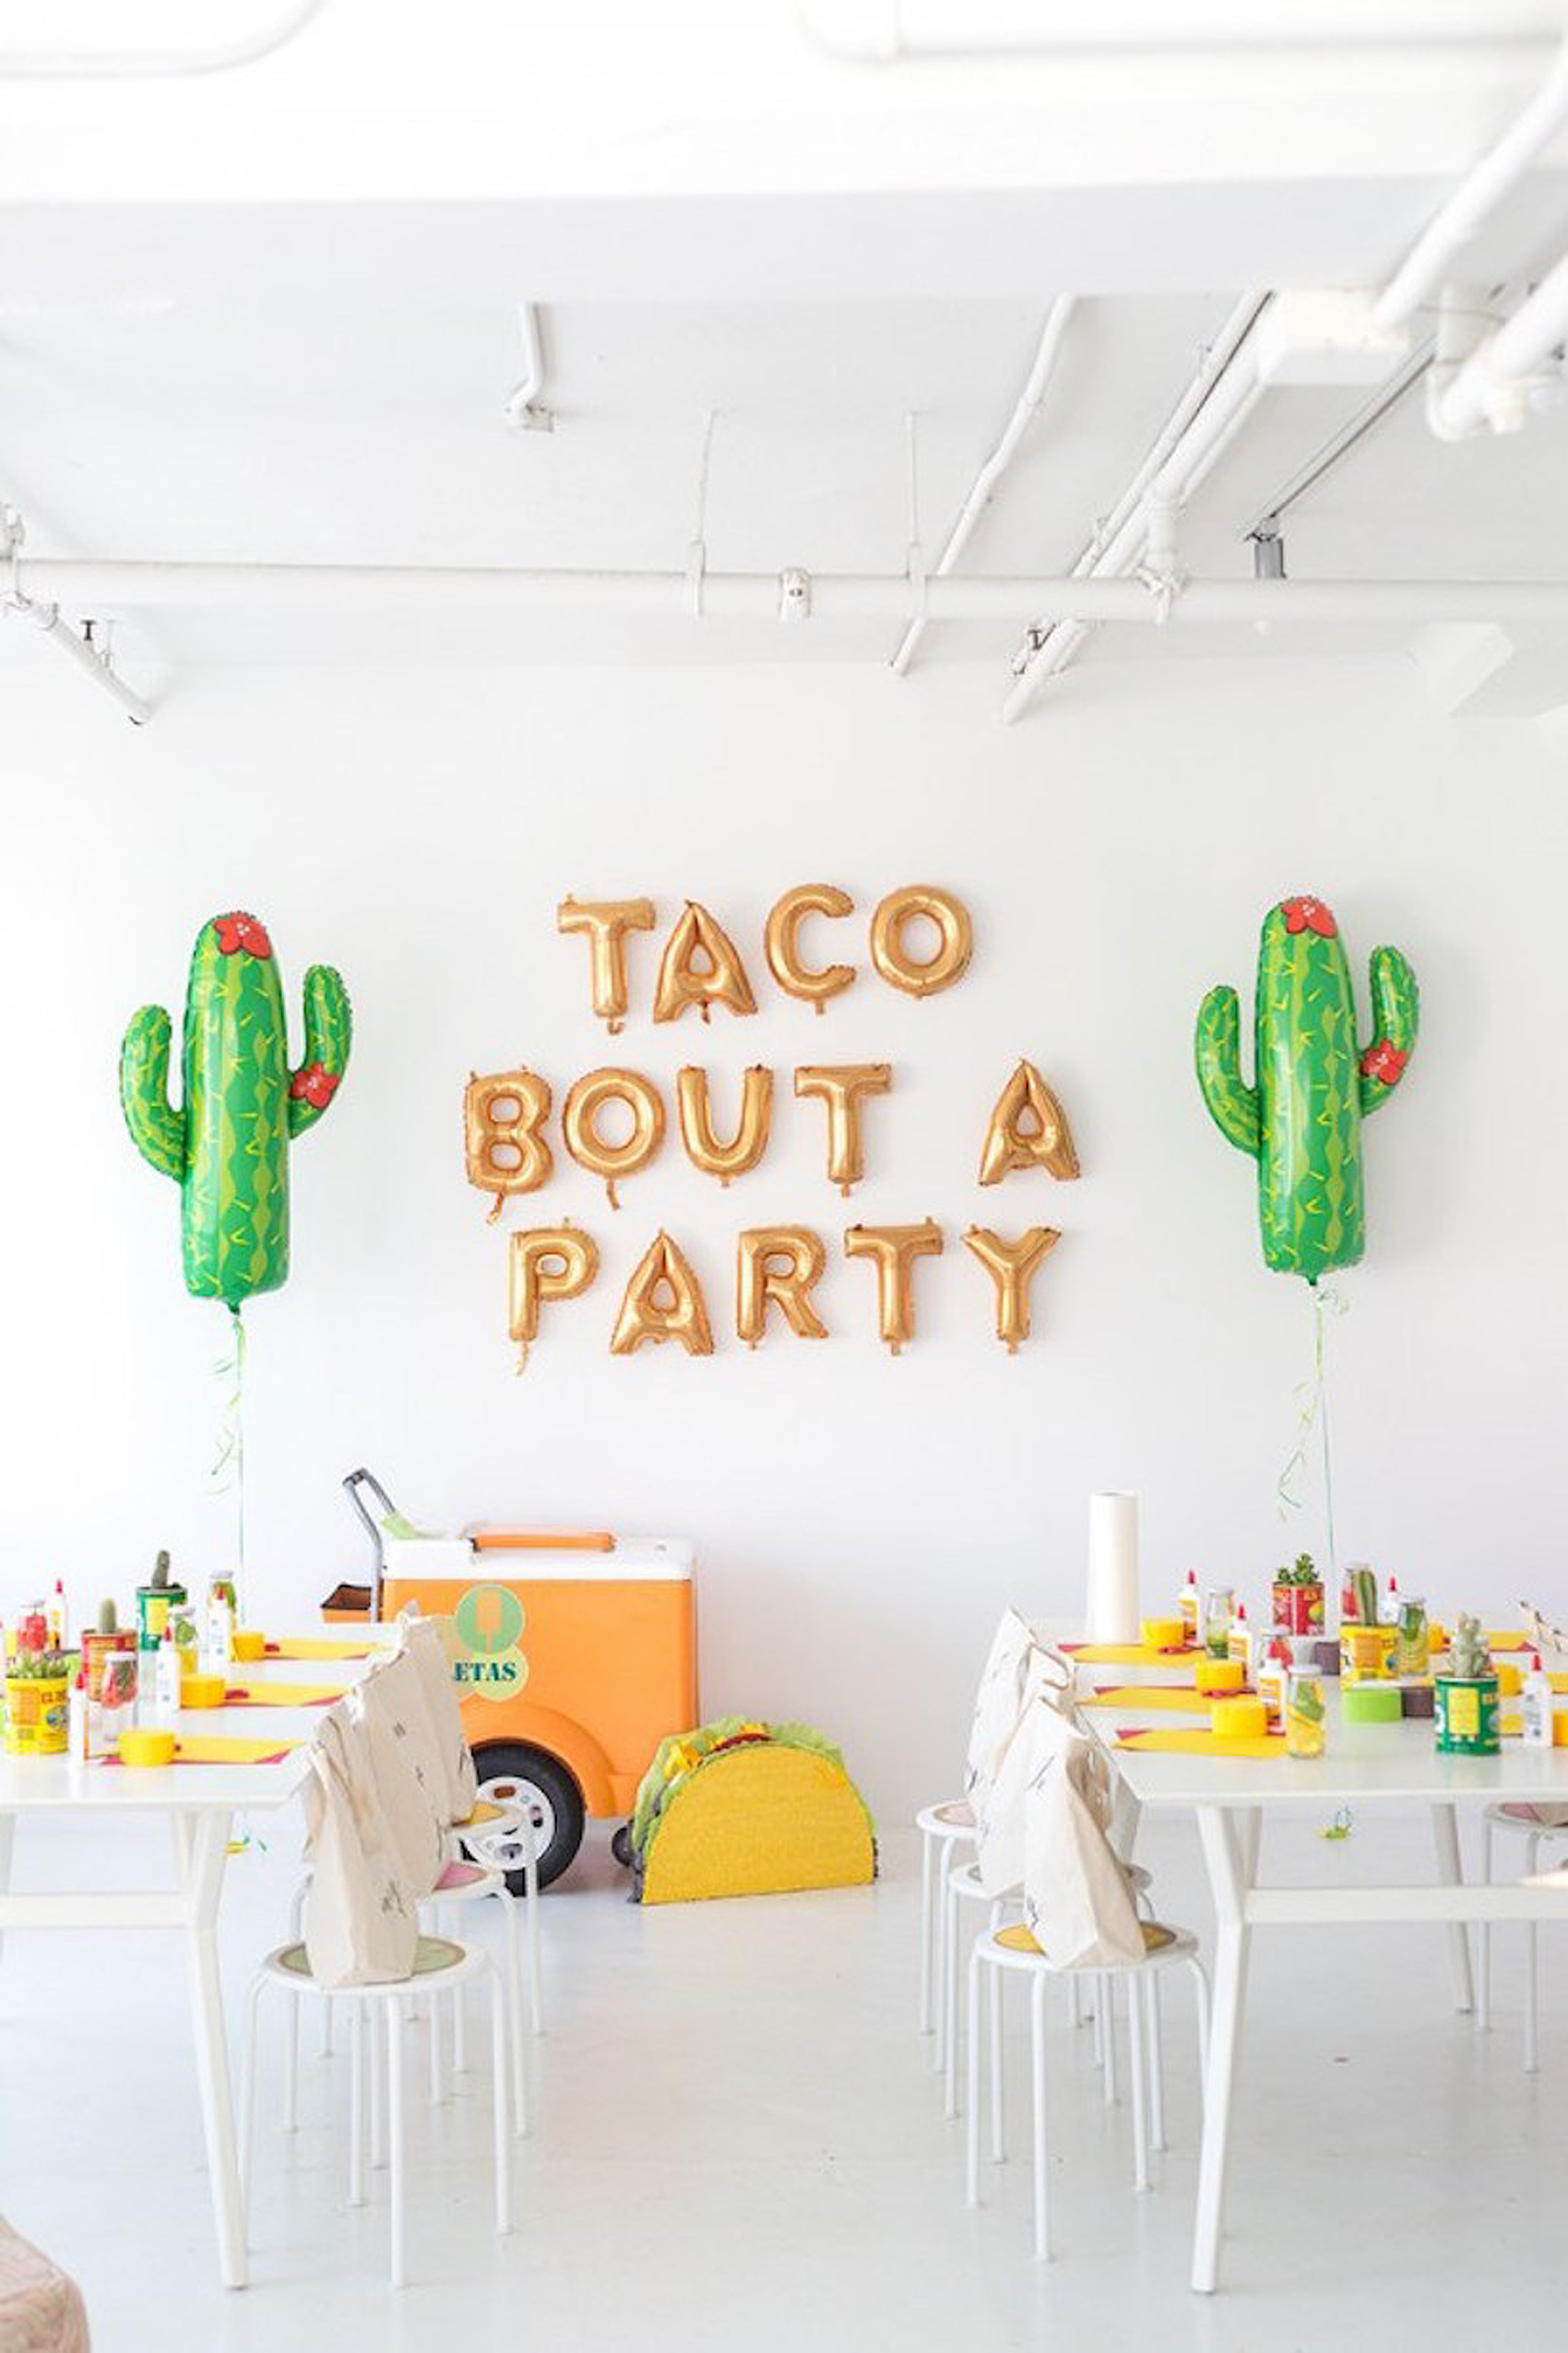 Taco-bout-a-party-sign-tacos-and-tequila-themed-party-decor